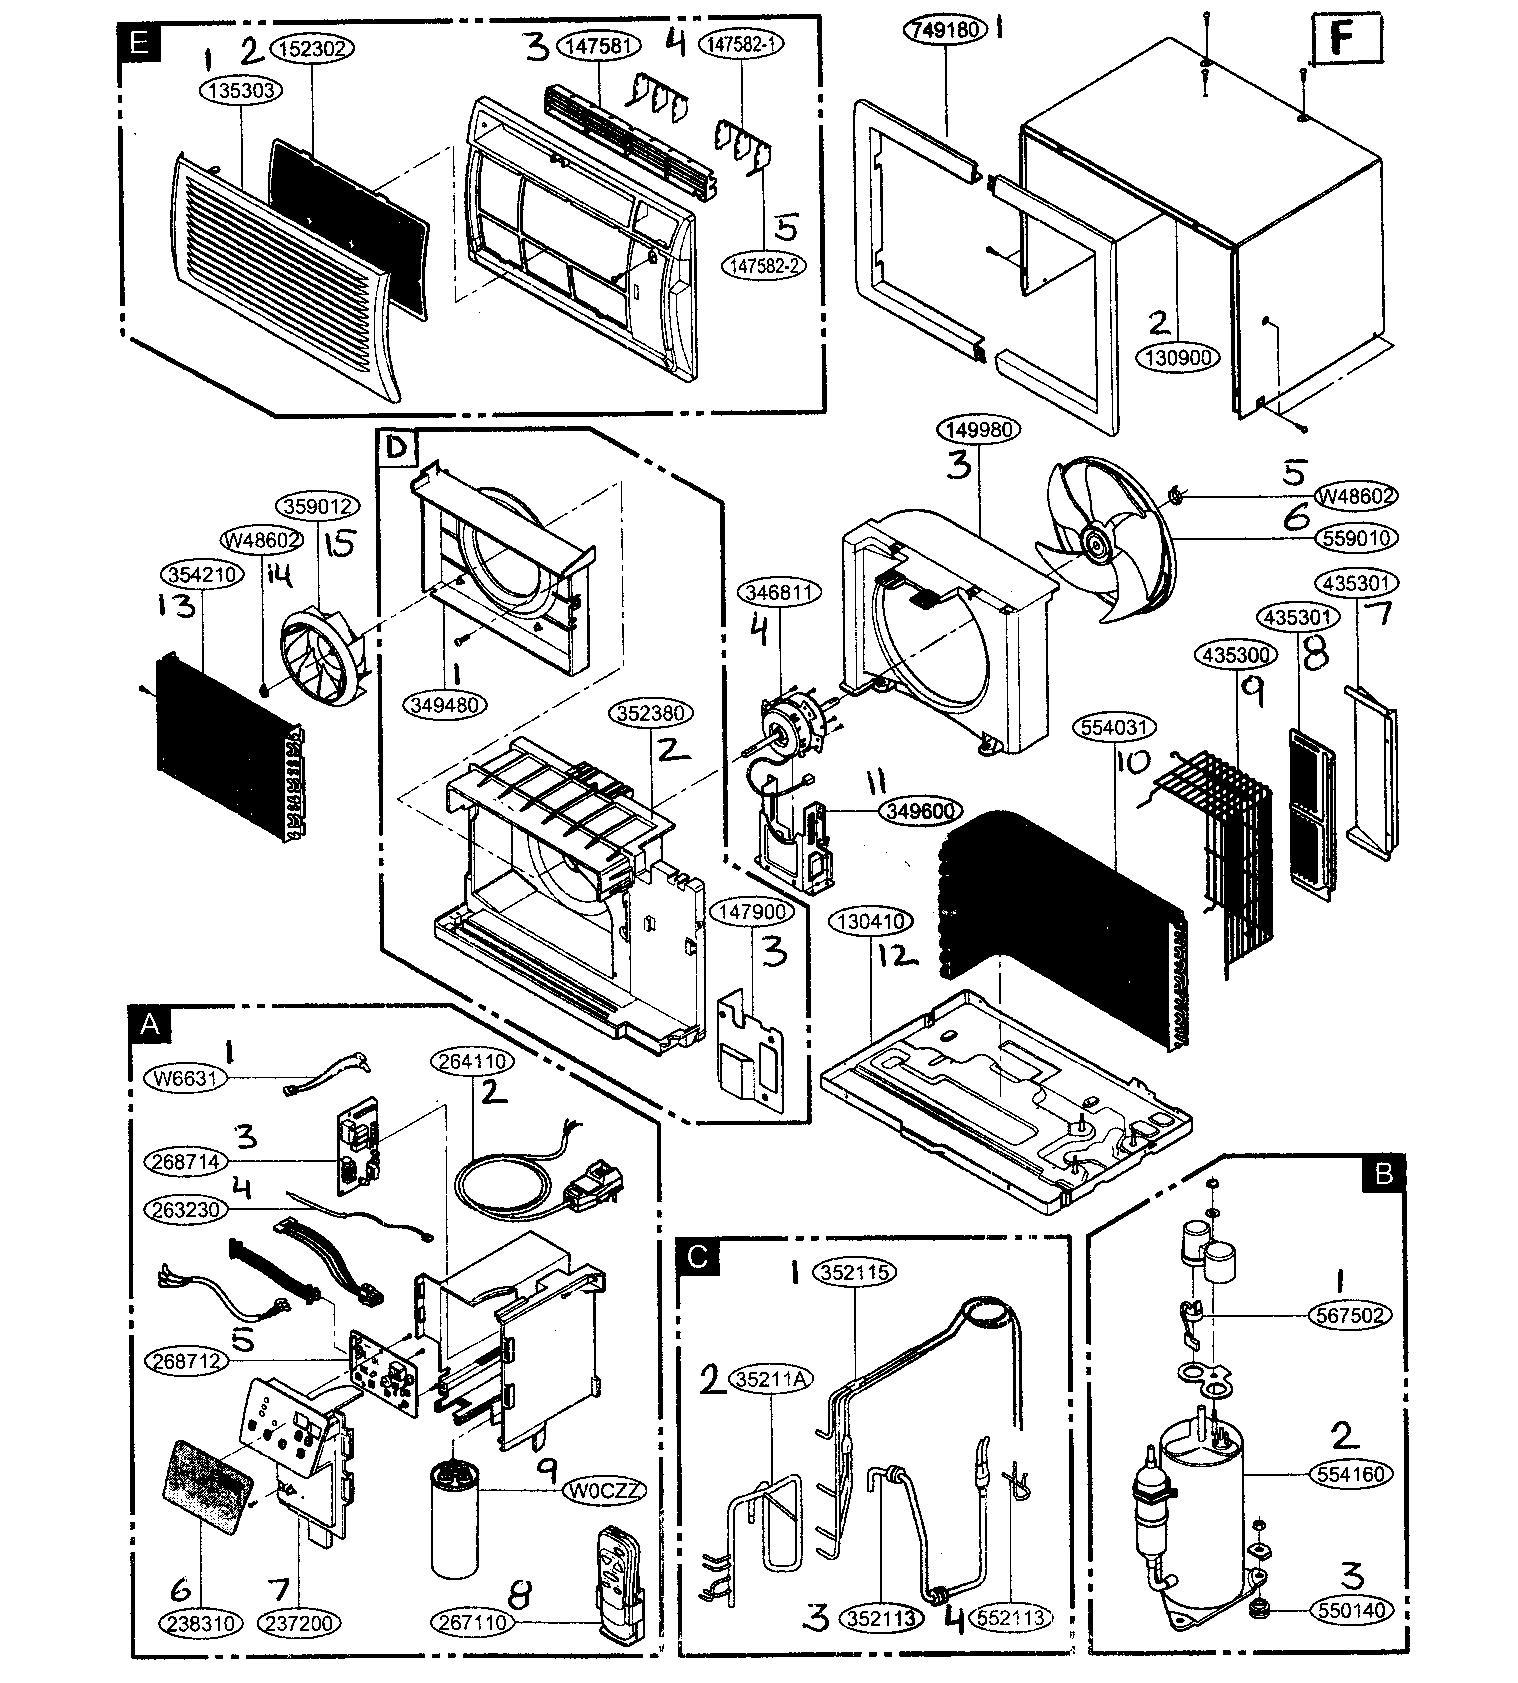 Parts of a central air conditioner diagram hephh coolers